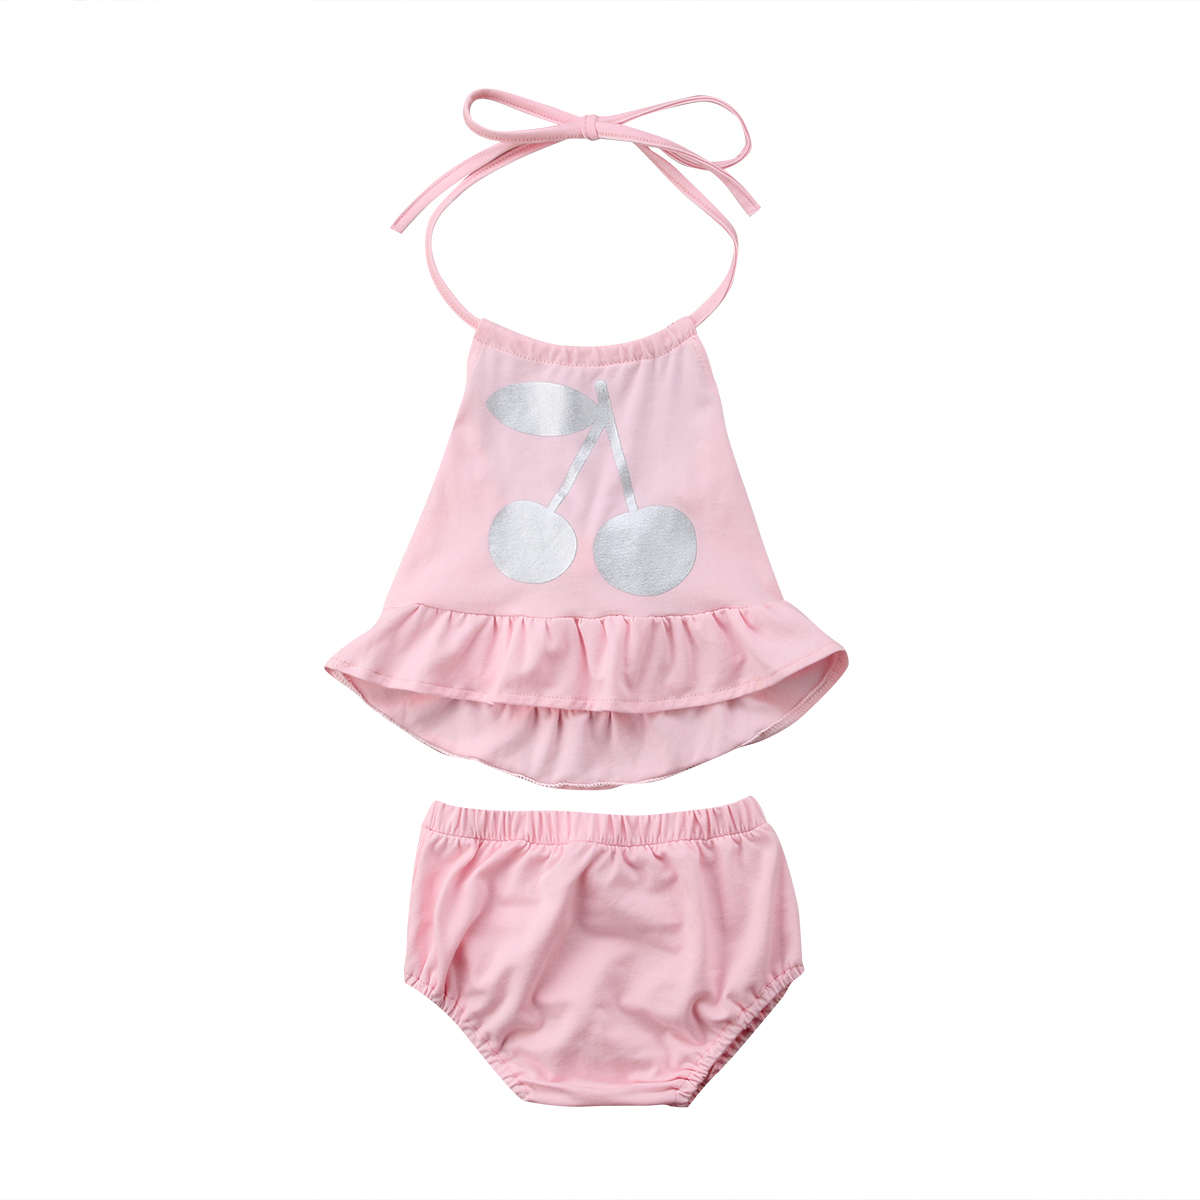 723984e43 Buy cheery baby and get free shipping on AliExpress.com